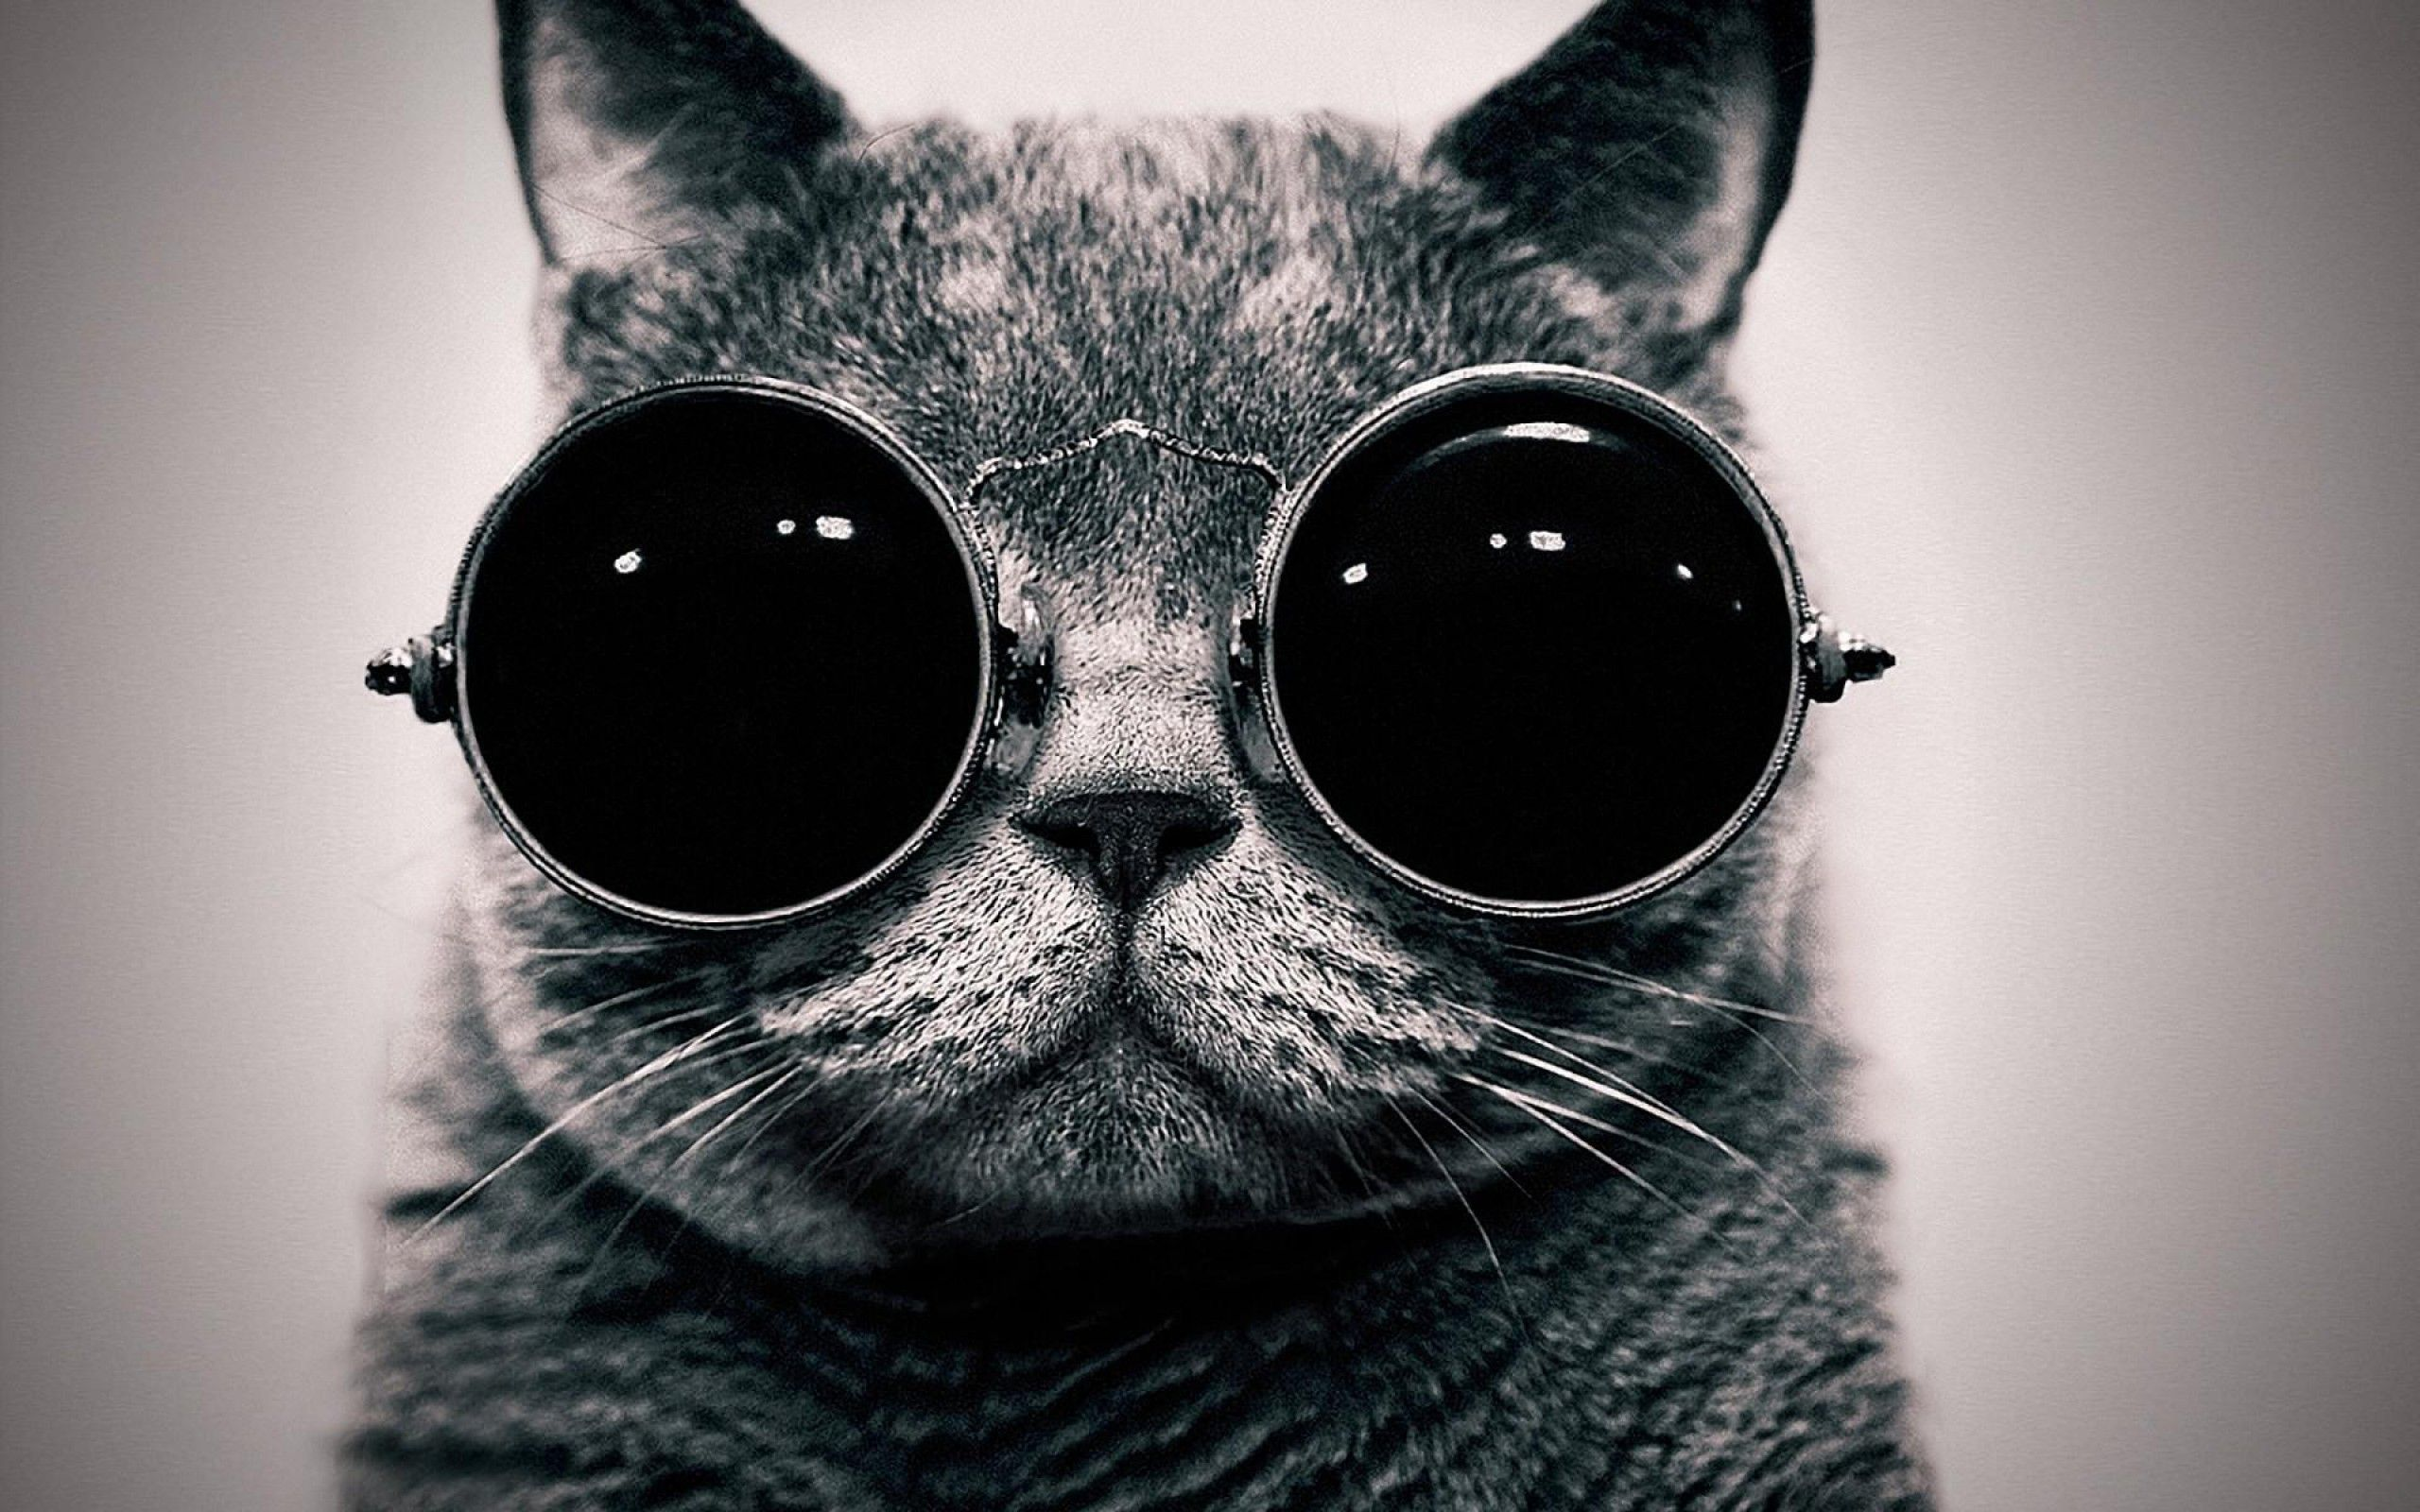 Cute Cat With Sunglasses Hd Wallpapers Image Hd Wallpapers Image